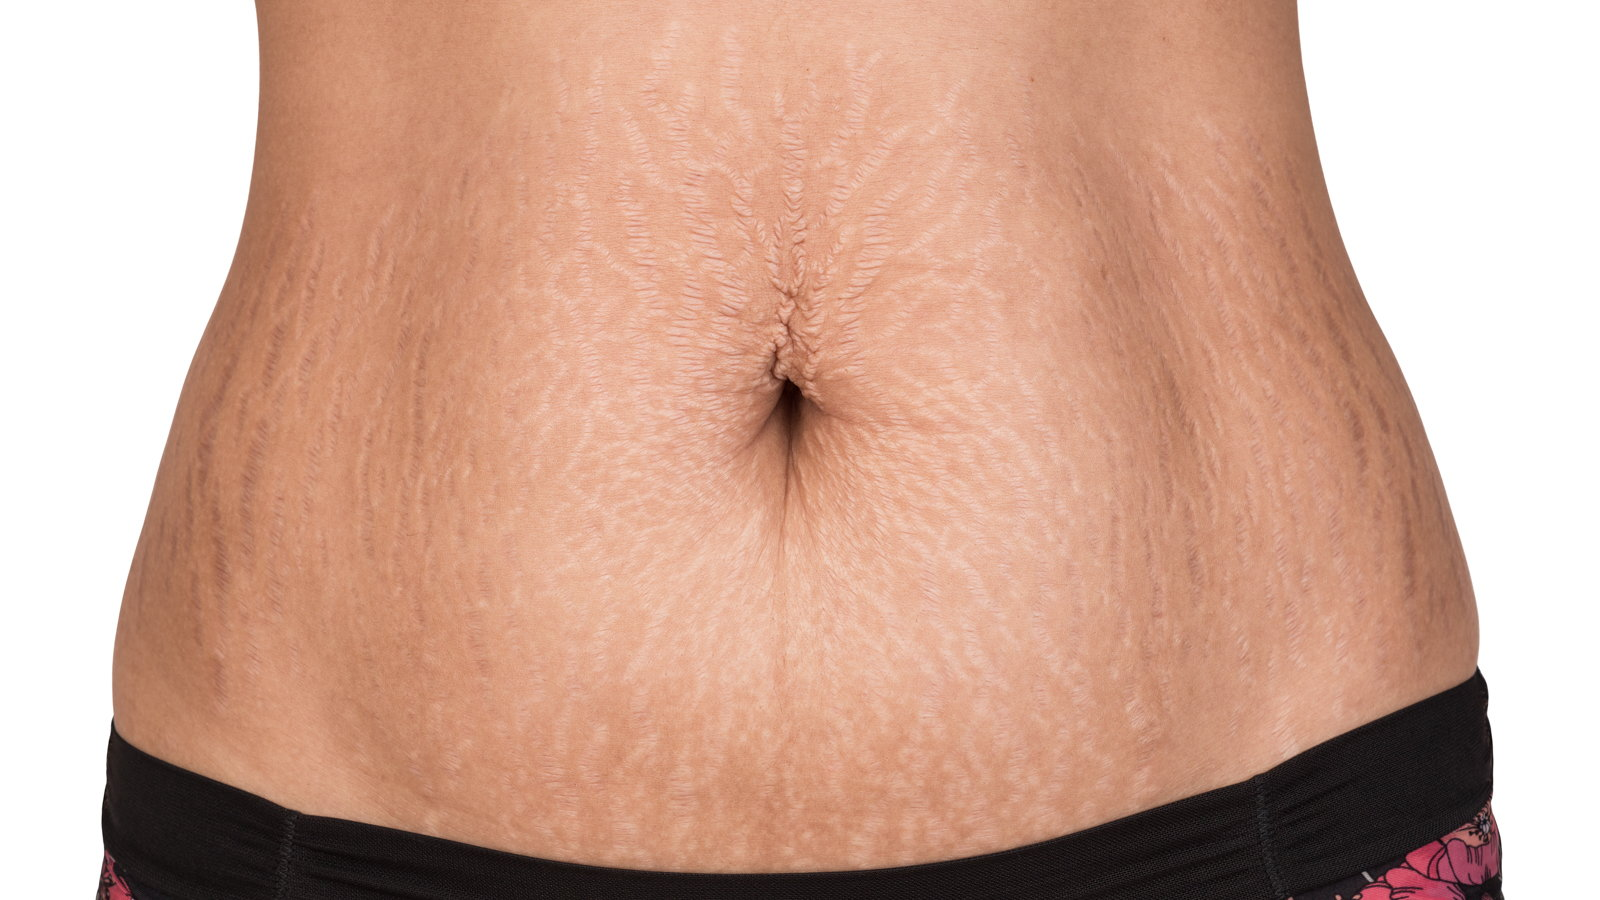 stomach with stretch marks